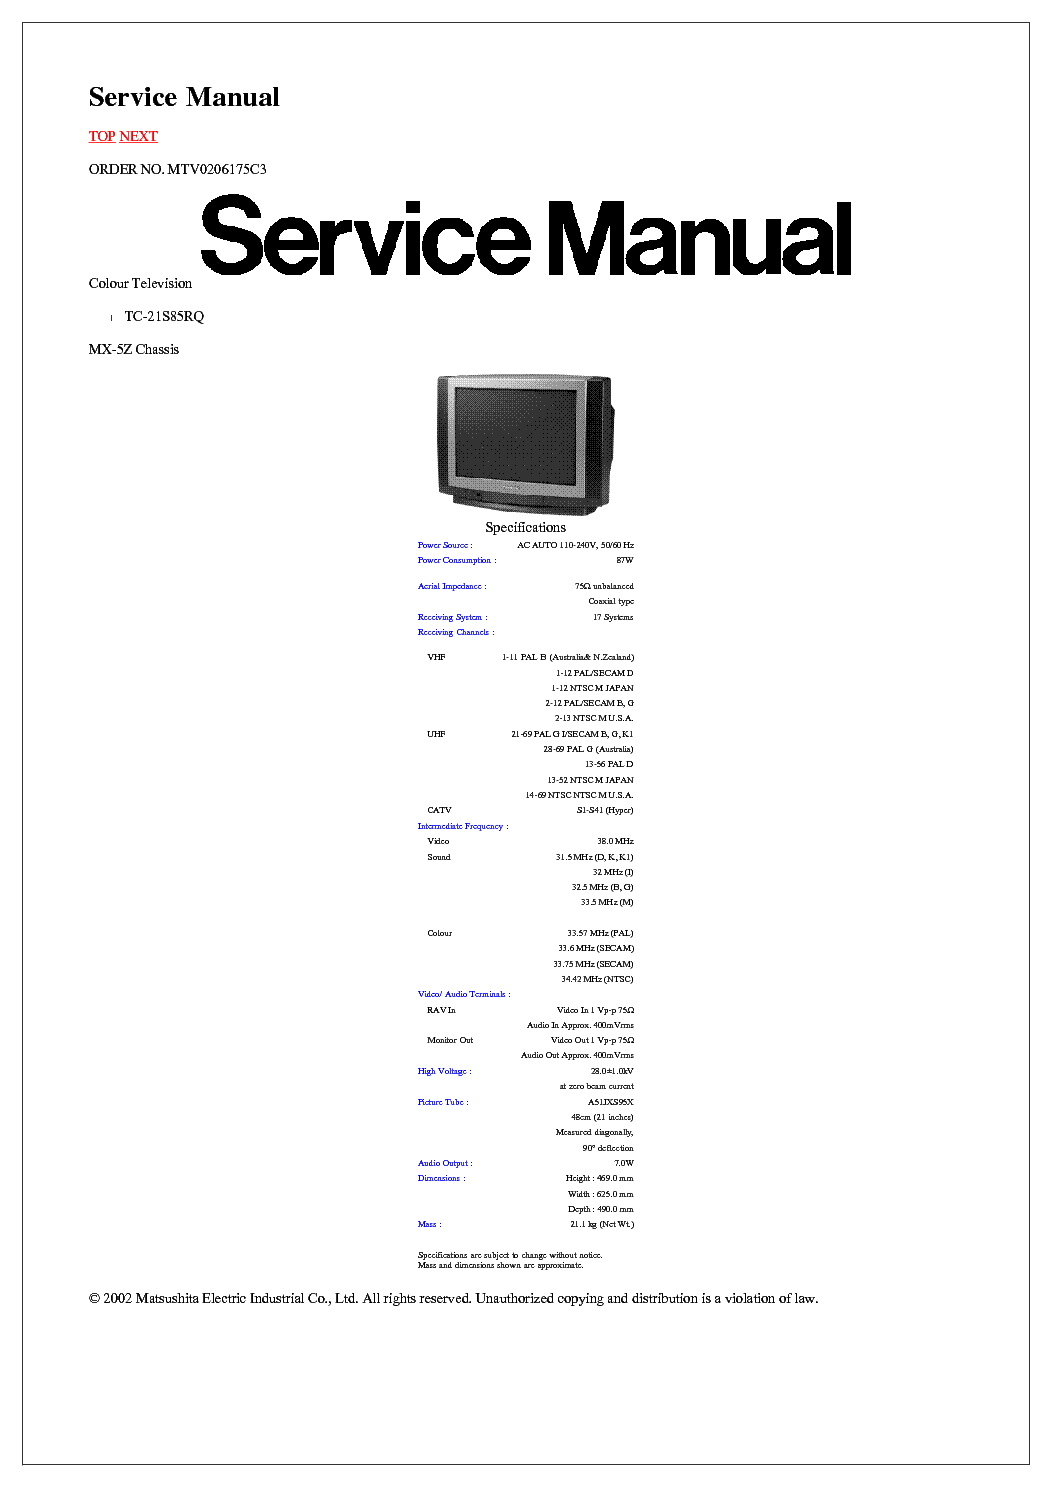 Television service manuals